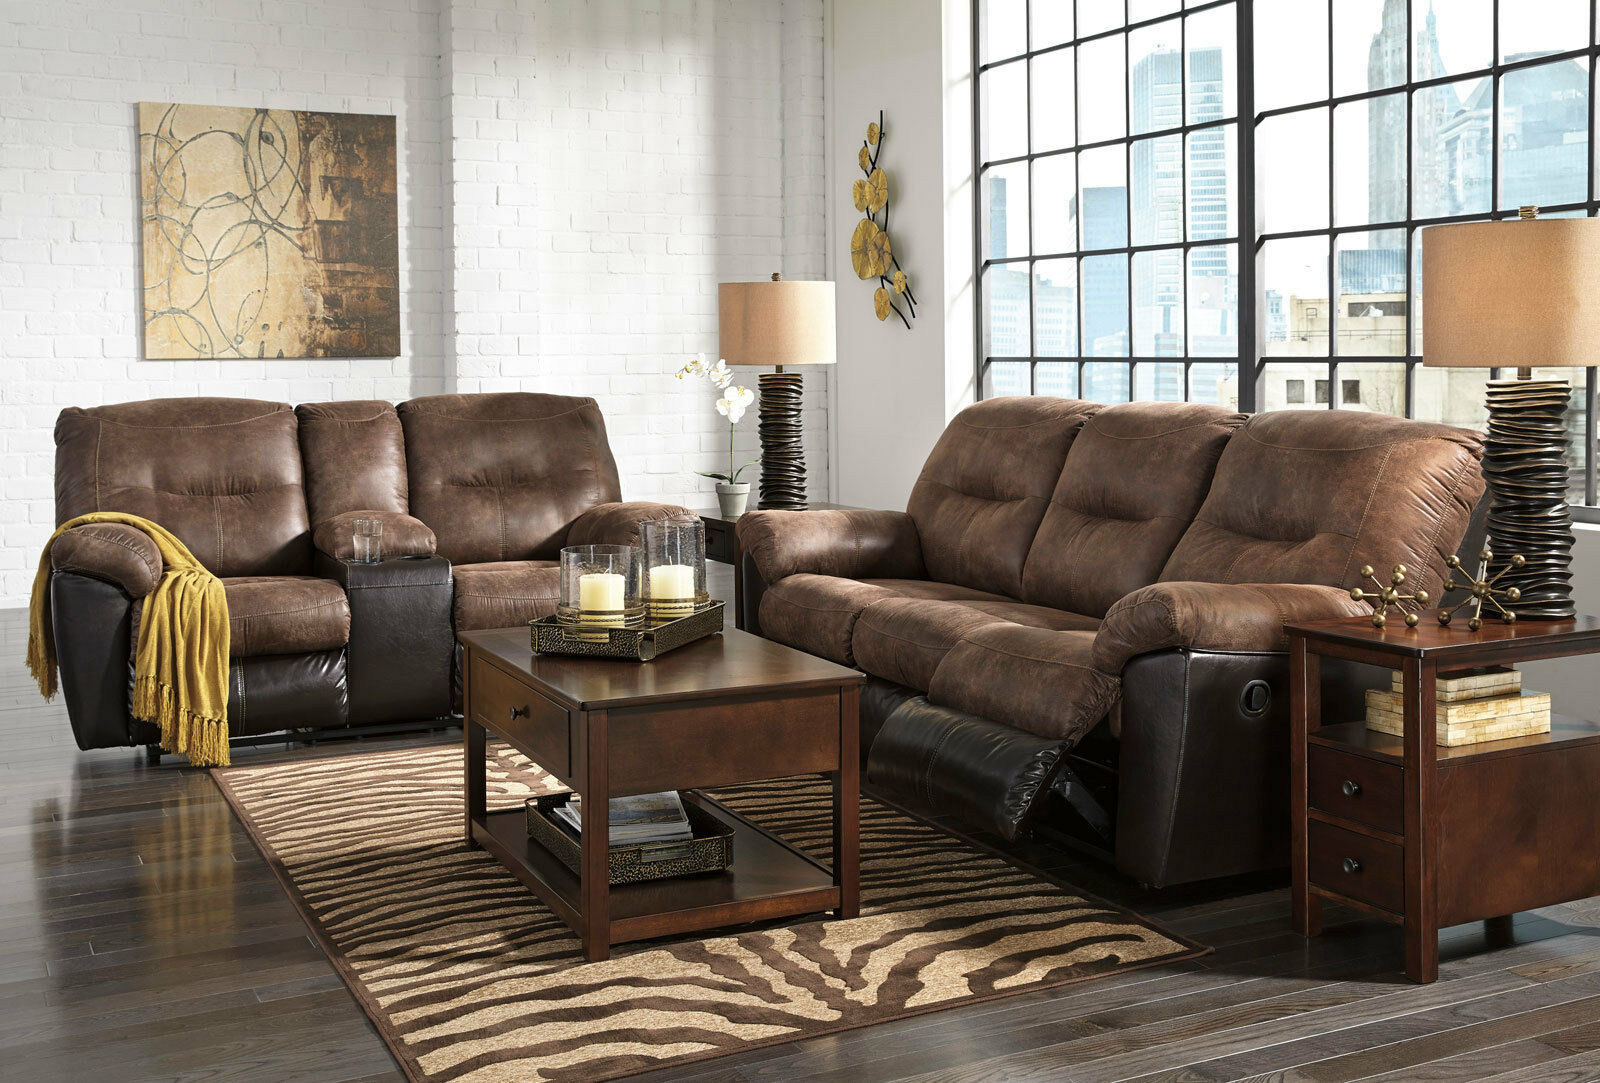 Greenwich modern living room couch set new brown fabric - Fabric reclining living room sets ...